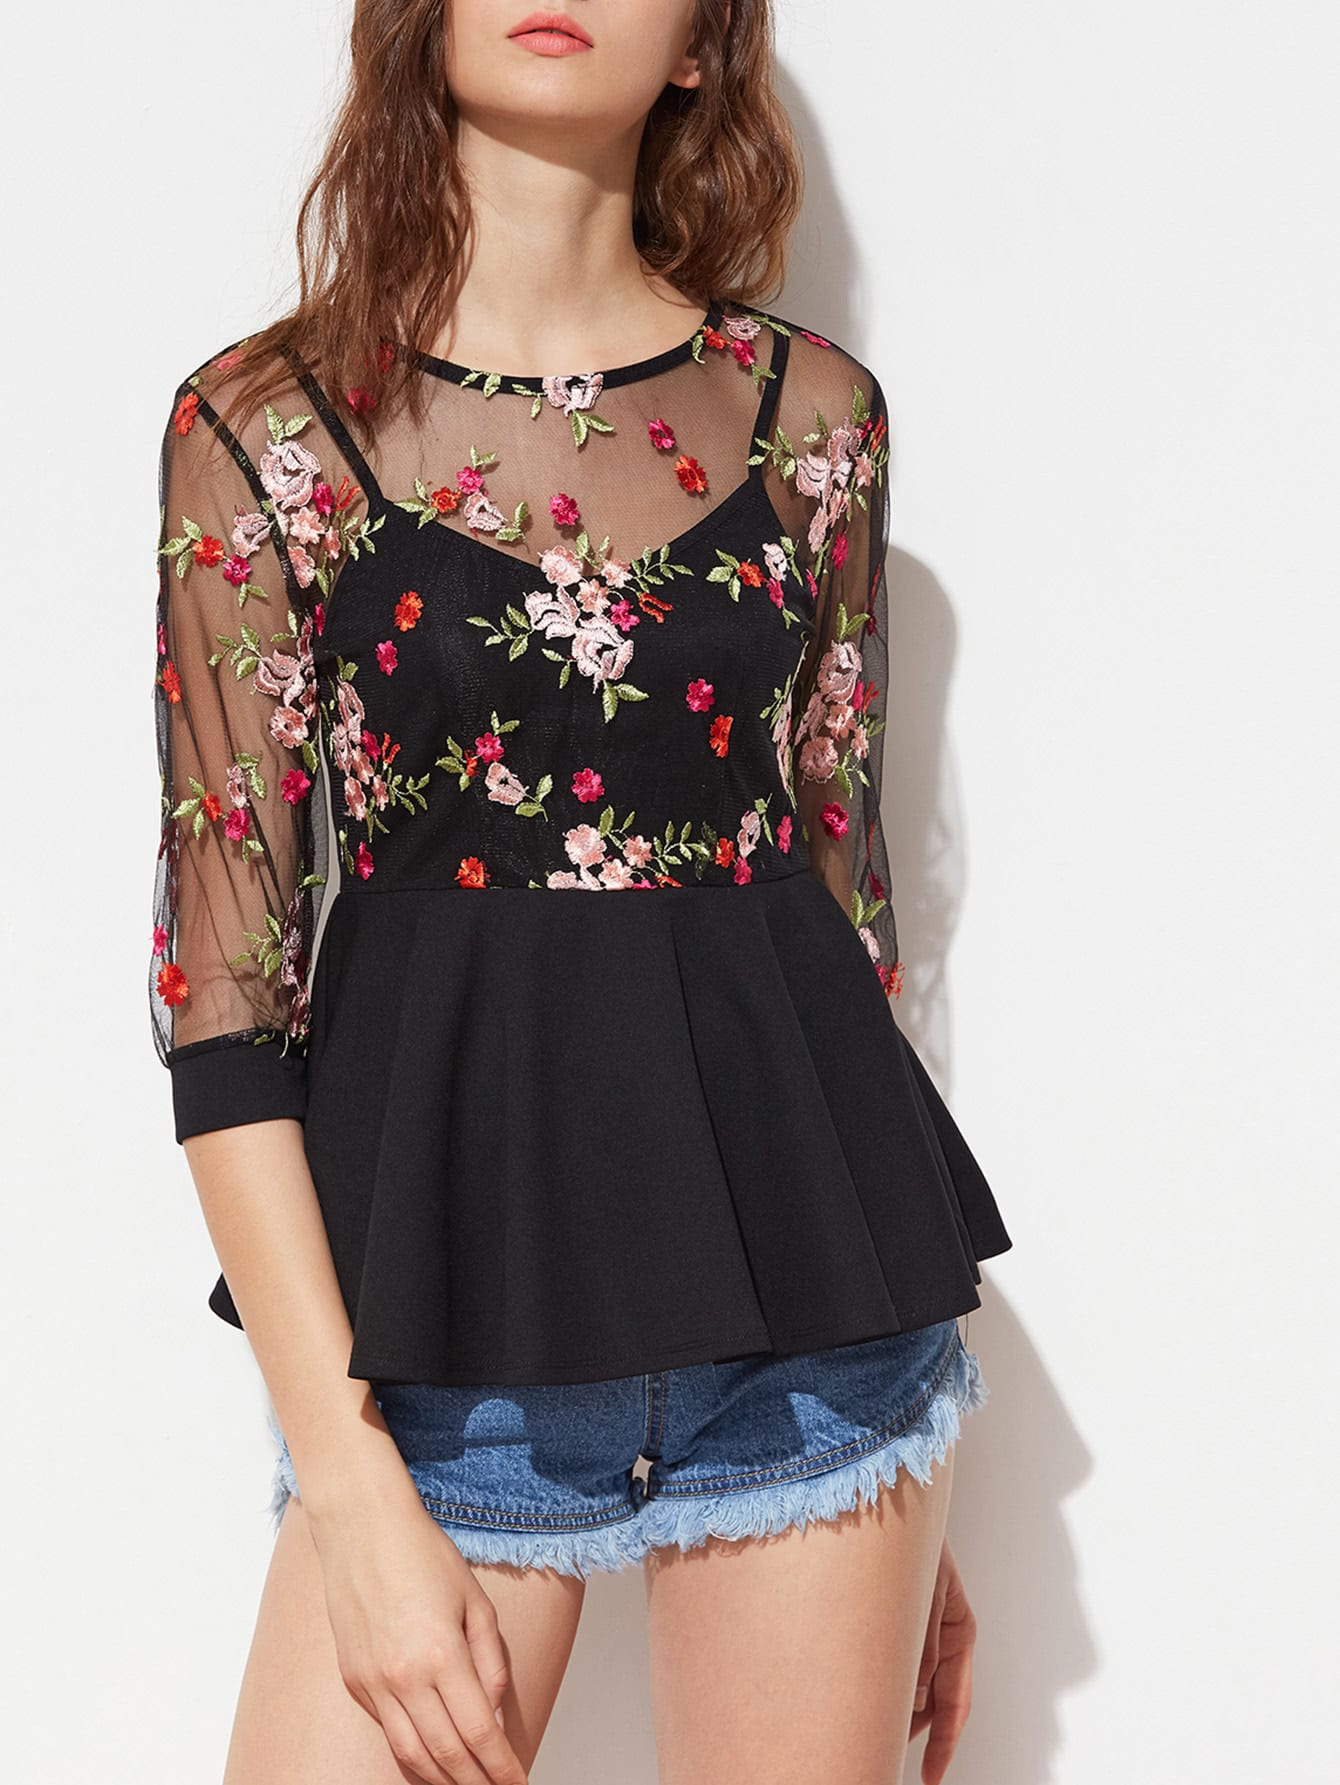 Flower Embroidered Mesh Overlay 2 In 1 Peplum Top